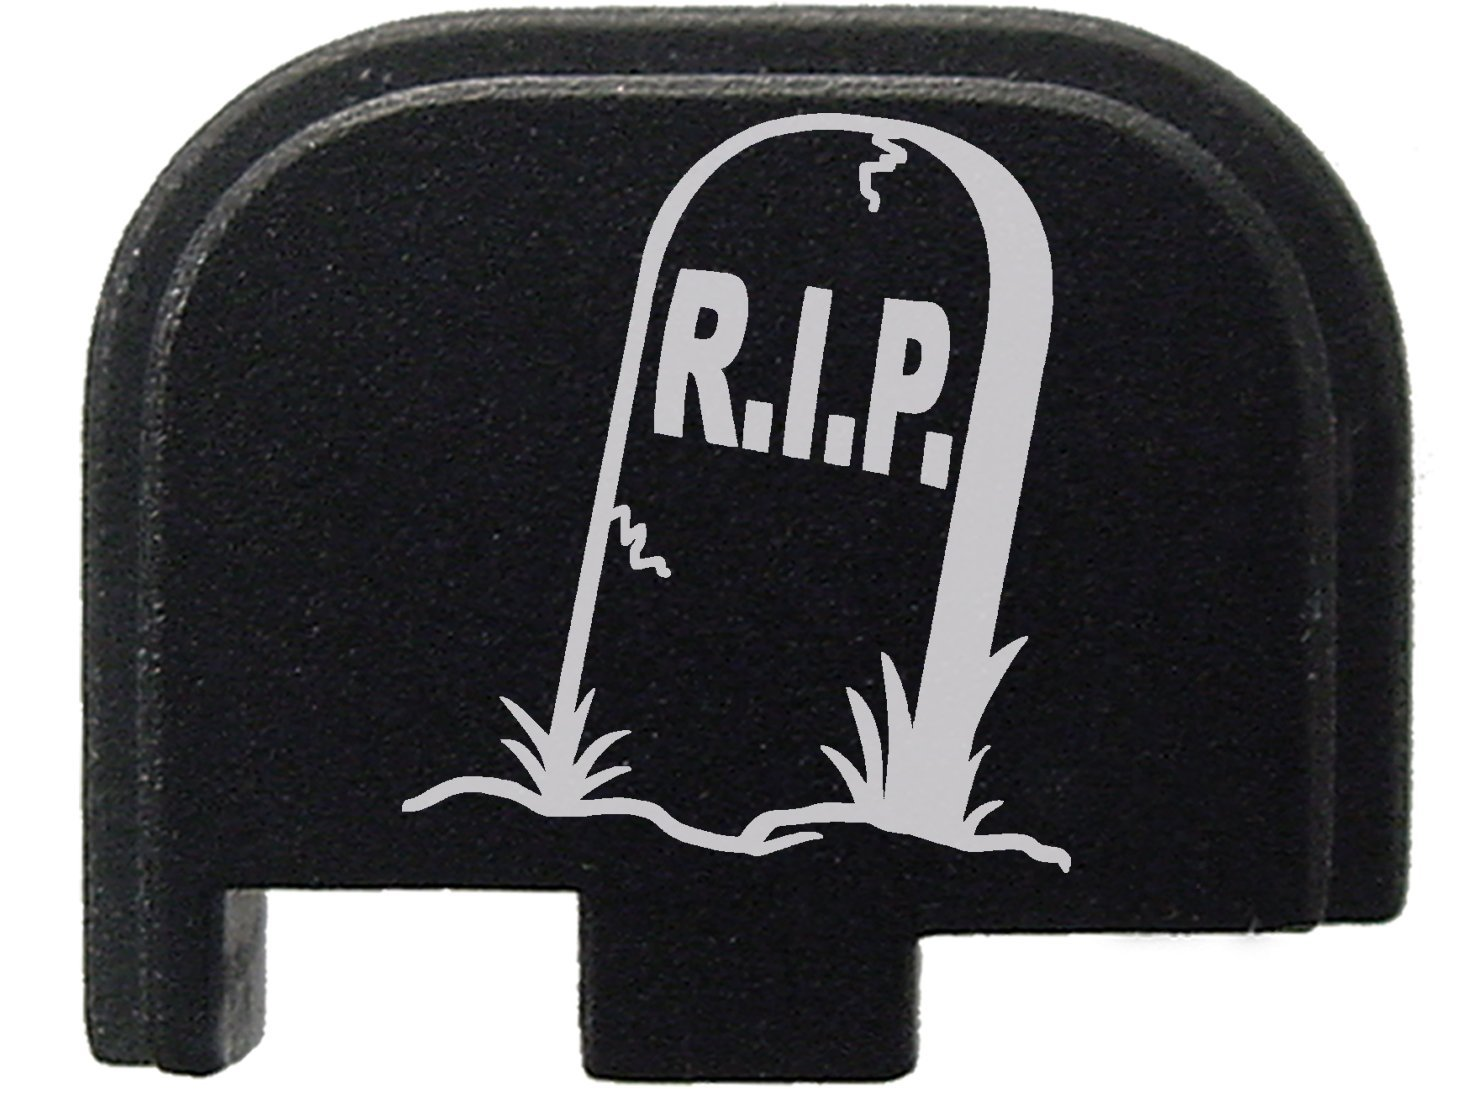 Black Rear Slide Cover Plate for Glock 42 G42 .380 ONLY R.I.P. Tombstone Headstone By NDZ Performance